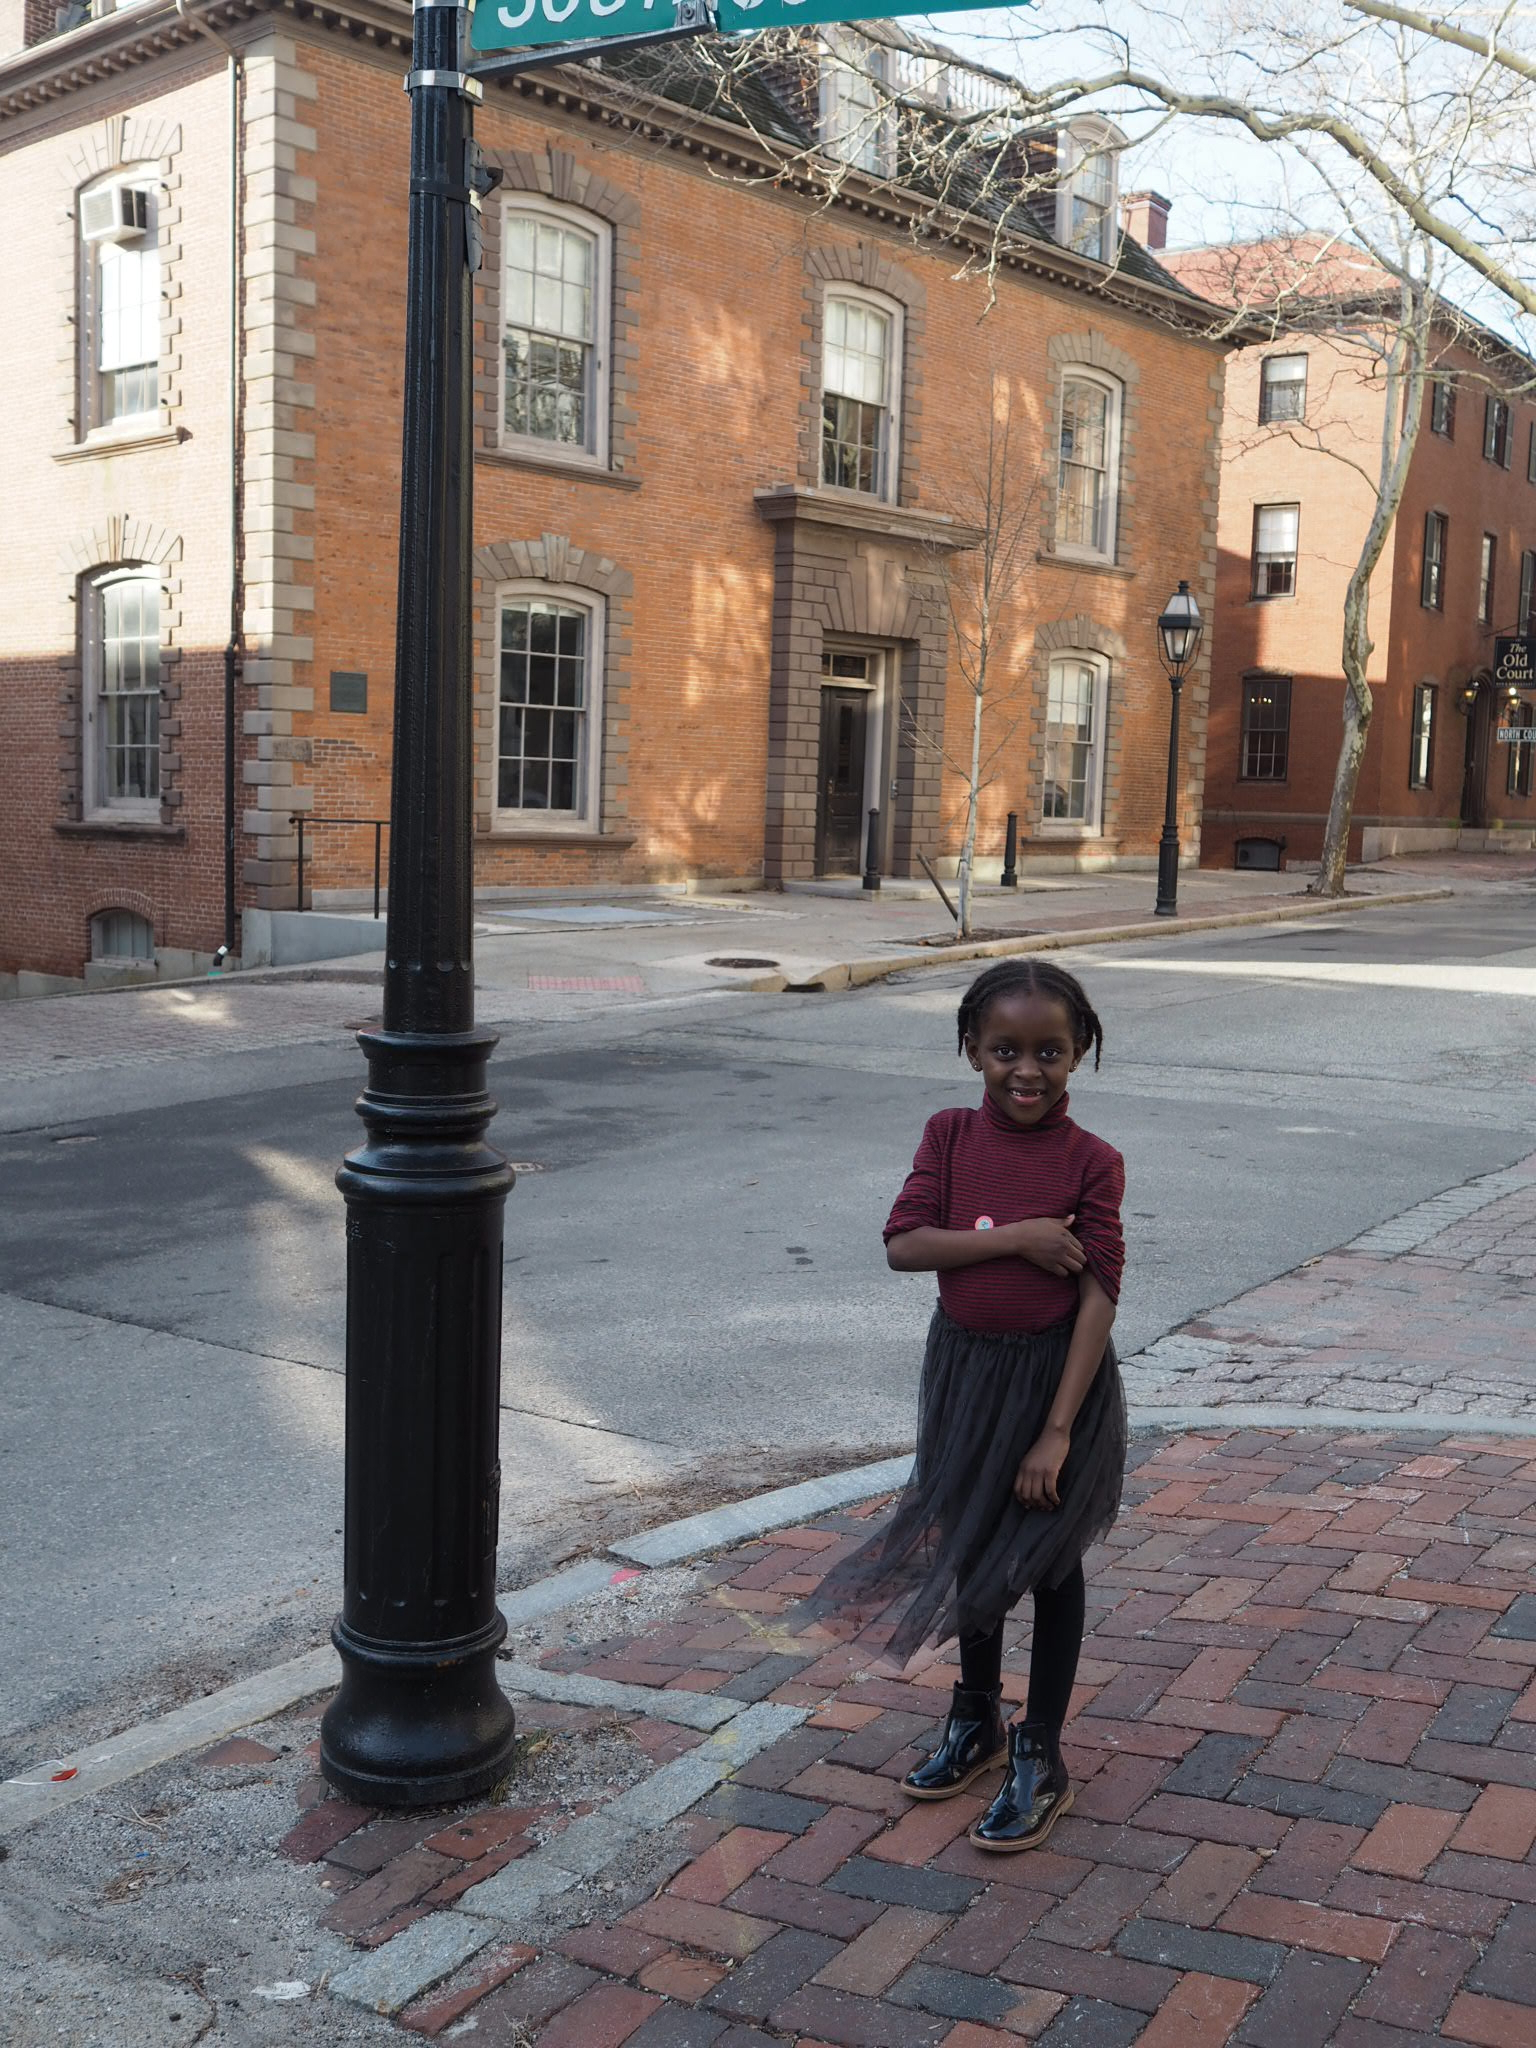 the architecture in providence reminds me so much of England. Lots of cobbled streets too! Pretty to look at but getting the buggy up them was a nightmare!